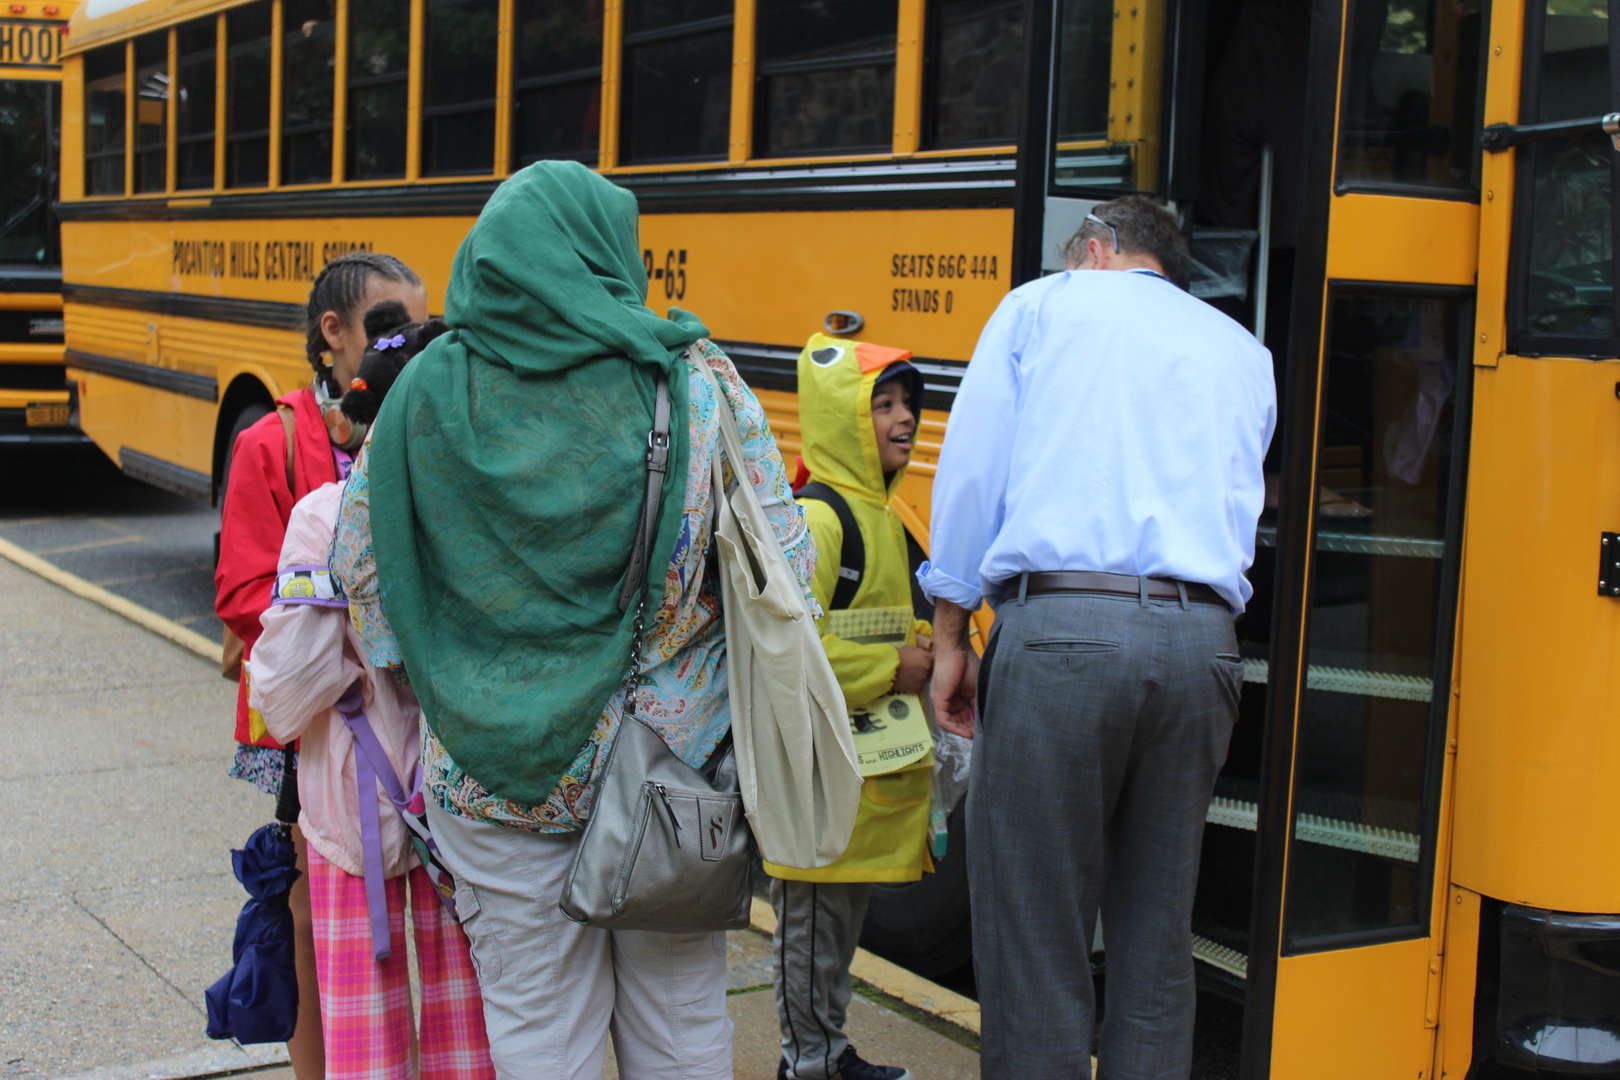 A staff member says goodbye to a student for the summer as the child boards his bus.